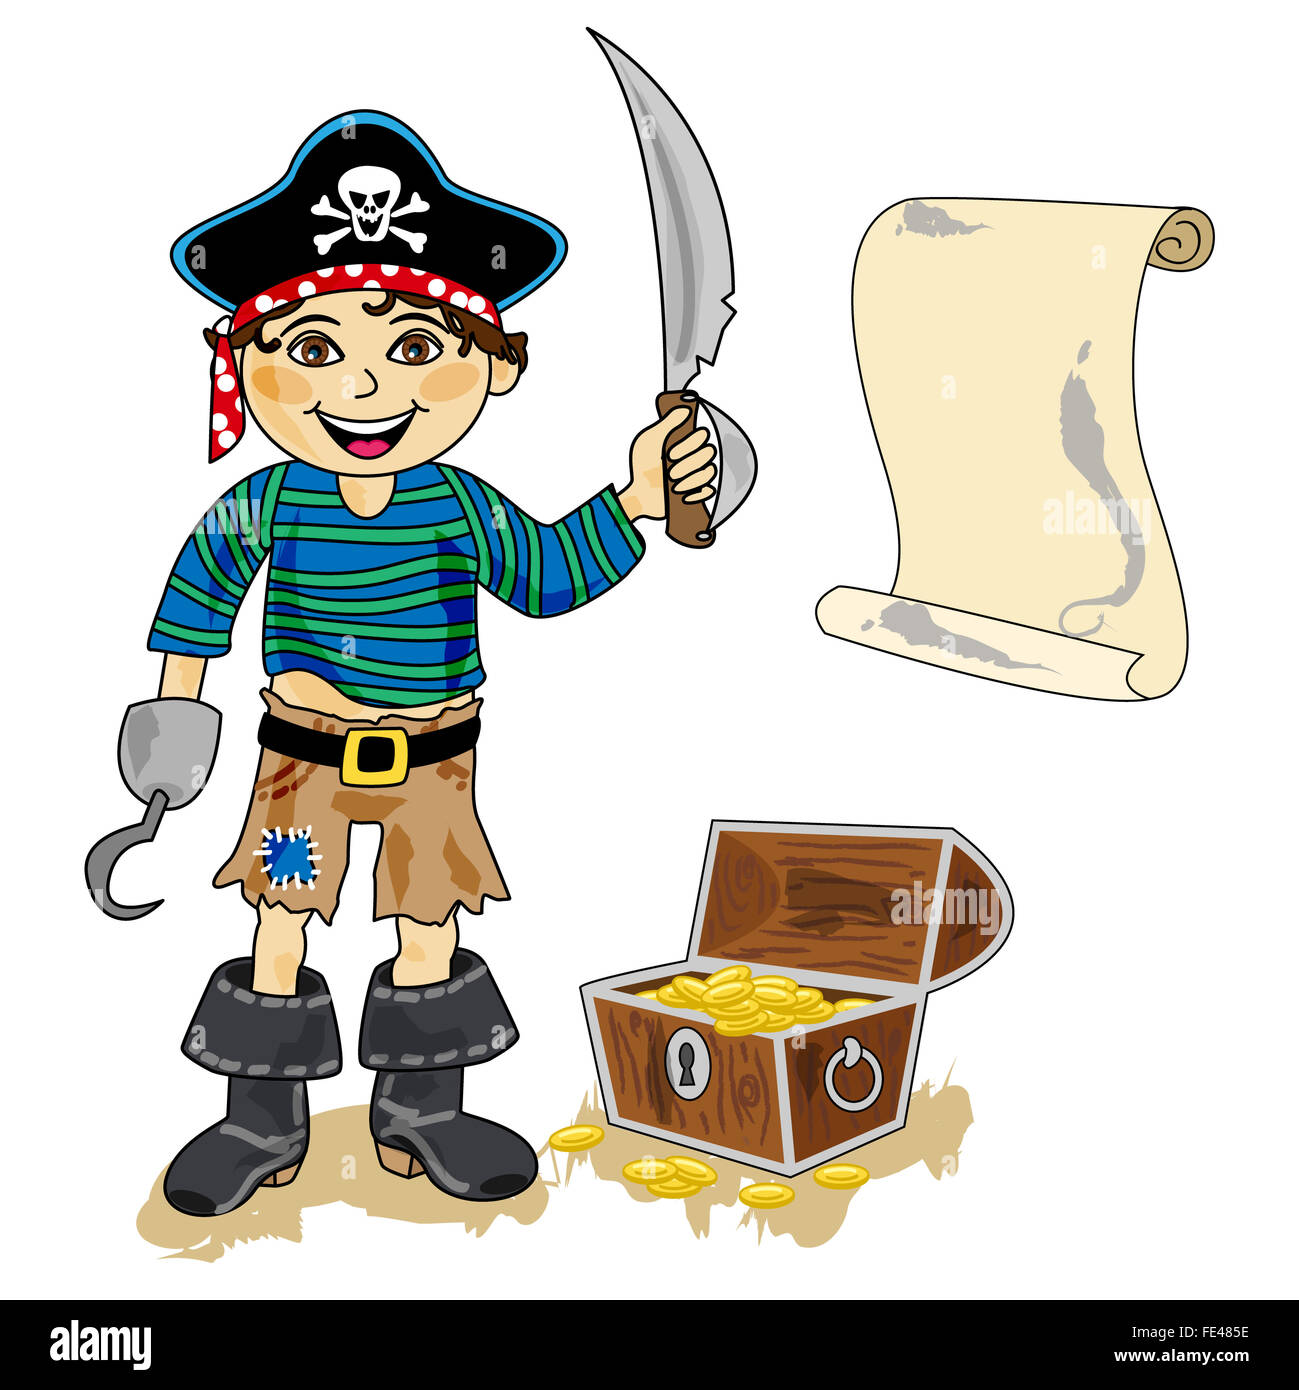 Treasure Toys Cartoon : Cute cartoon pirate character with hook sword map and